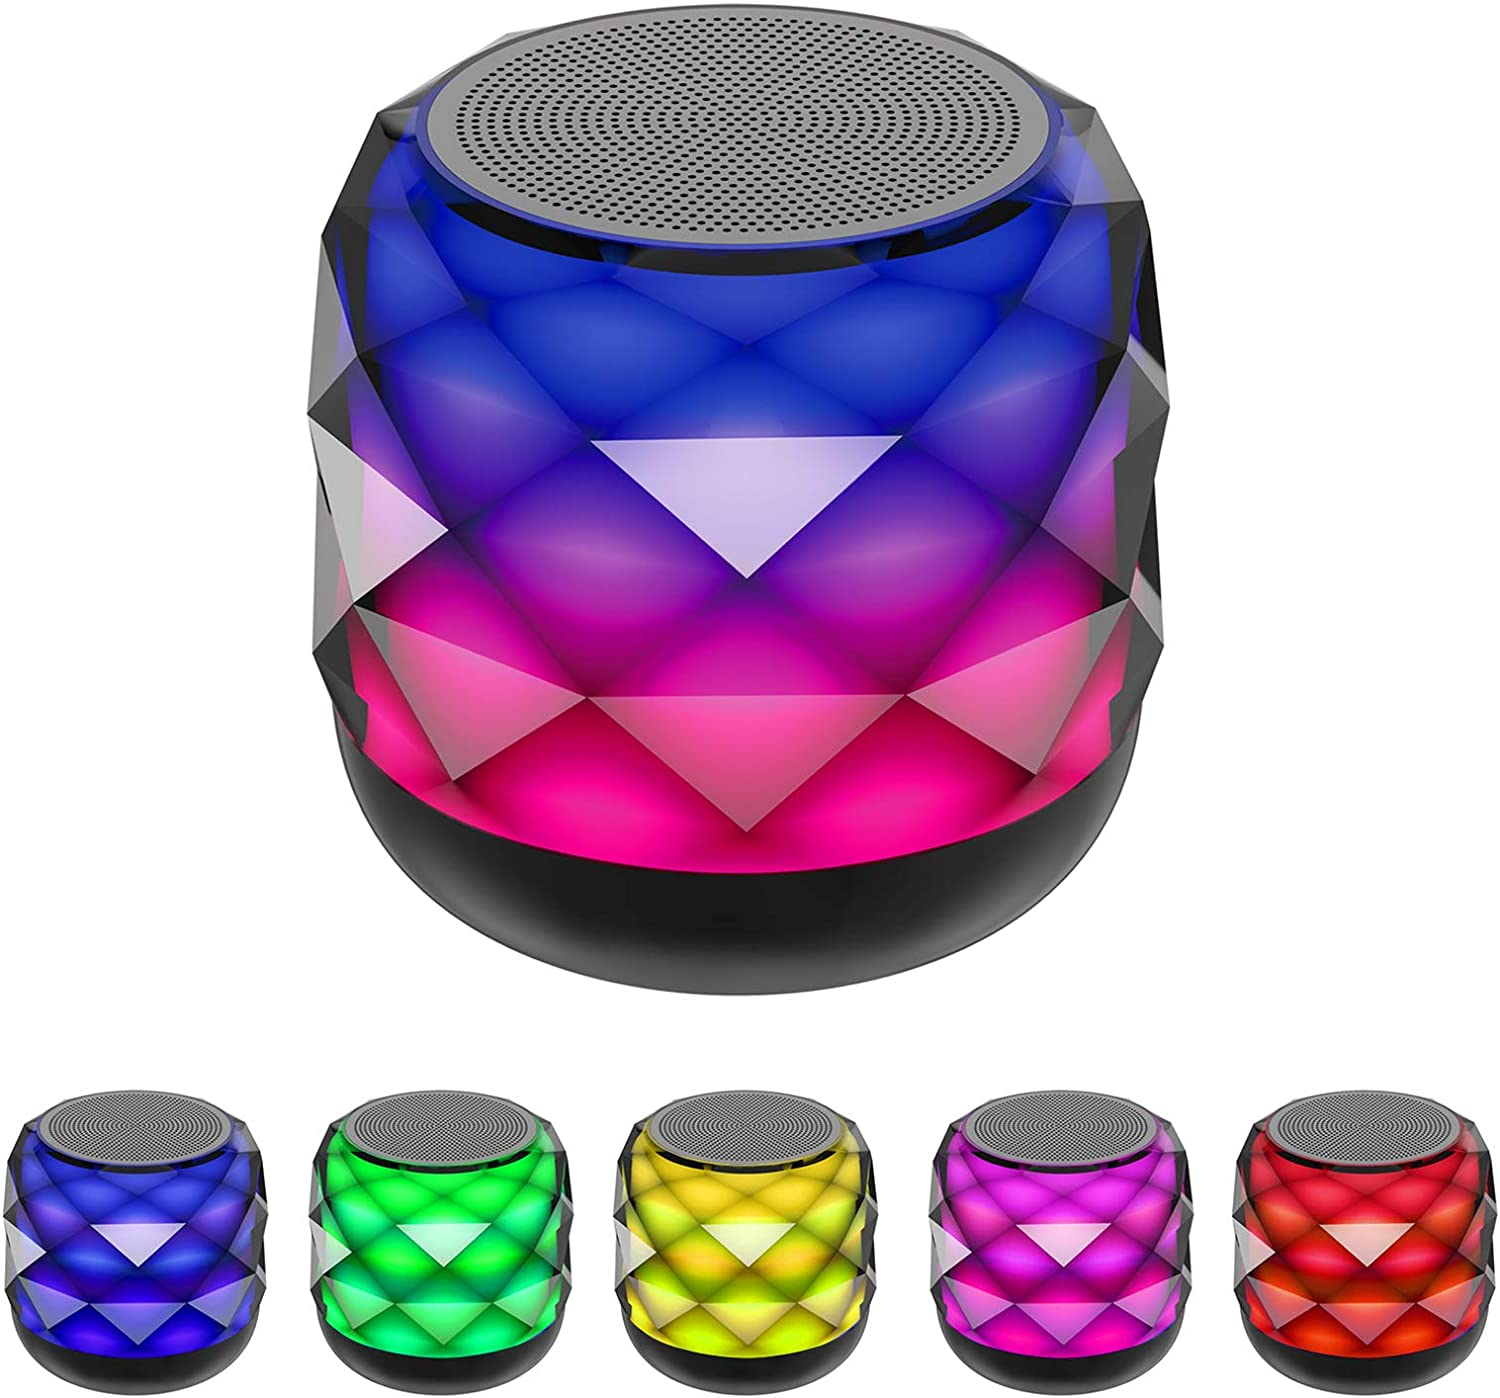 Wireless Bluetooth Speaker with LED Night Light Changing, Portable Speaker 6 Color LED Themes, Support Handsfree Call,MicroSD and iPhone Sumsung Cellphone (Black)…